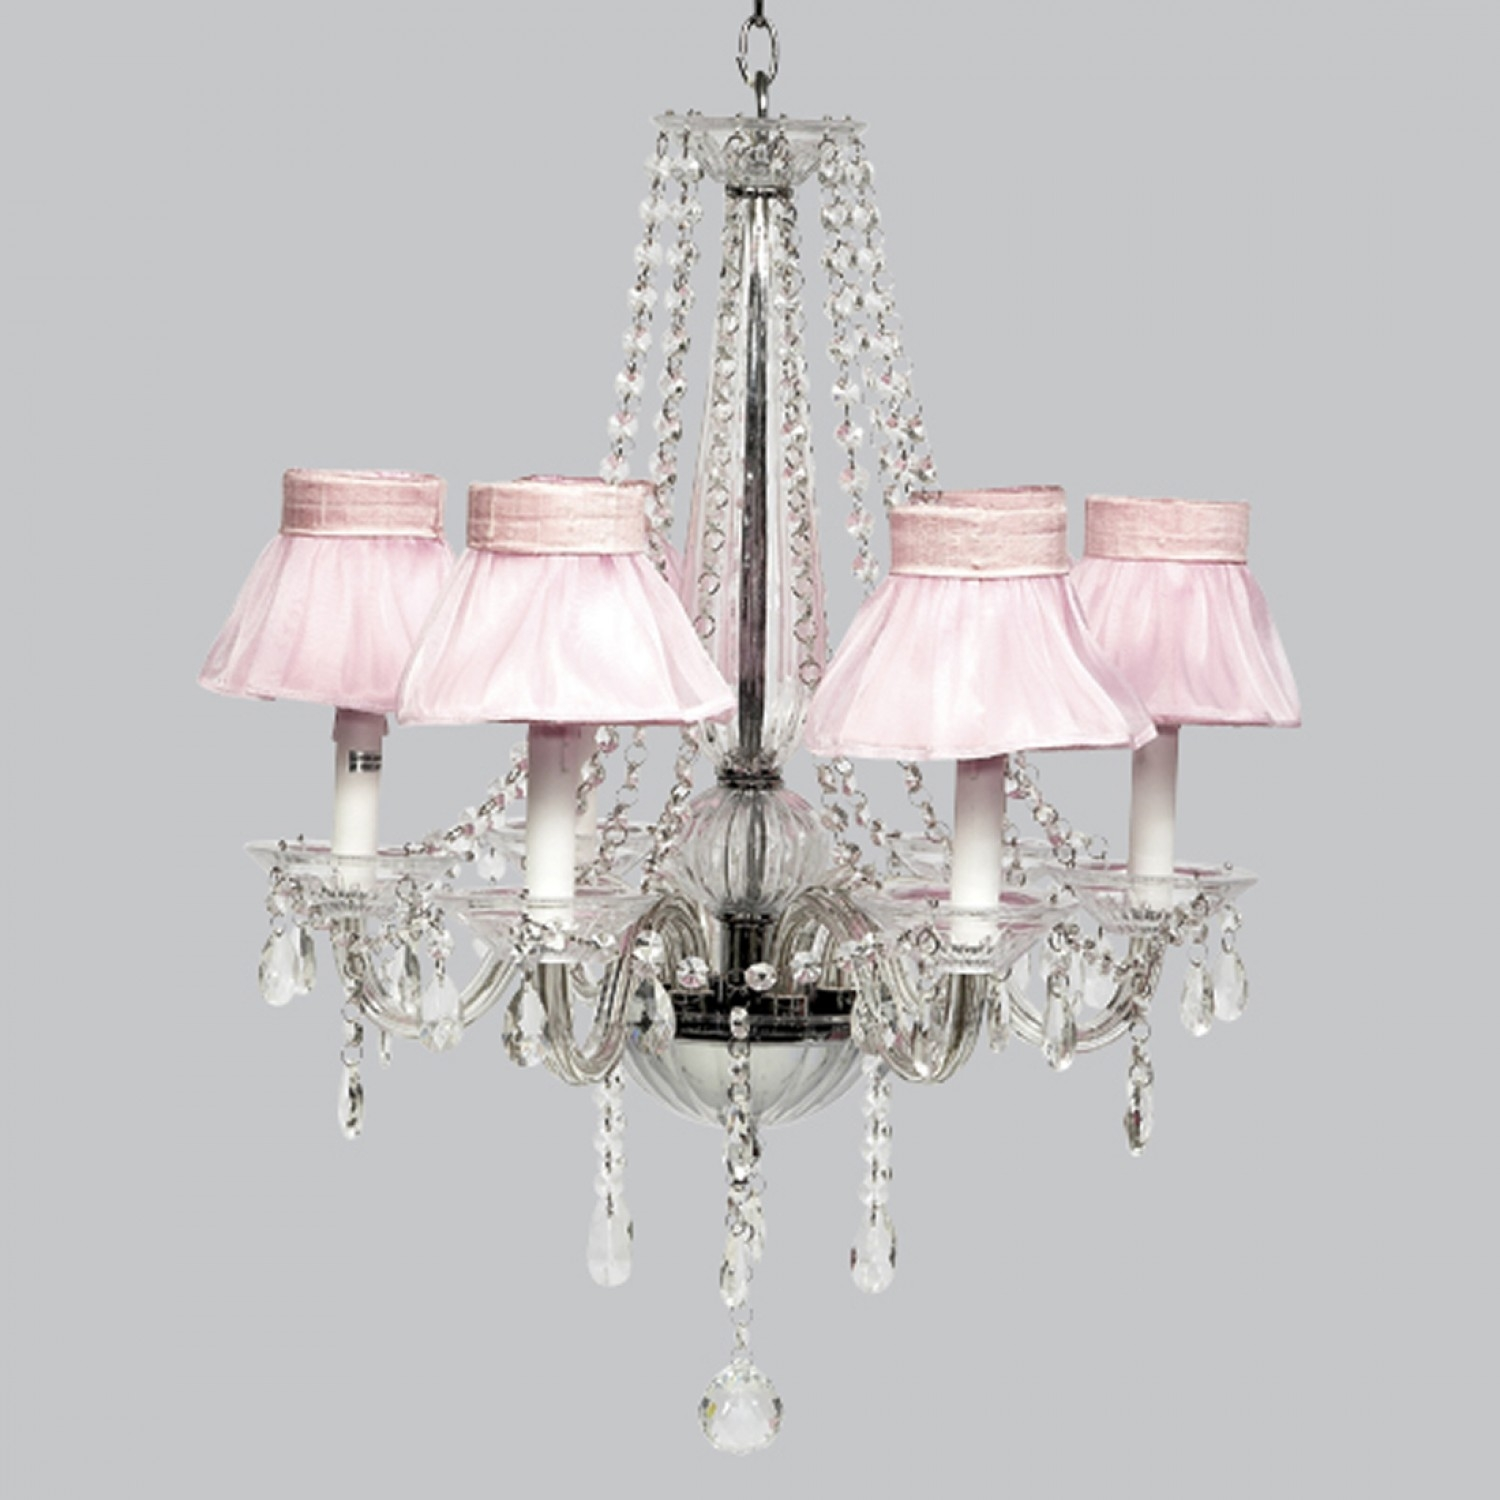 The Best Chandelier Lamp Shades Best Home Decor Inspirations Intended For Chandelier Light Shades (View 23 of 25)